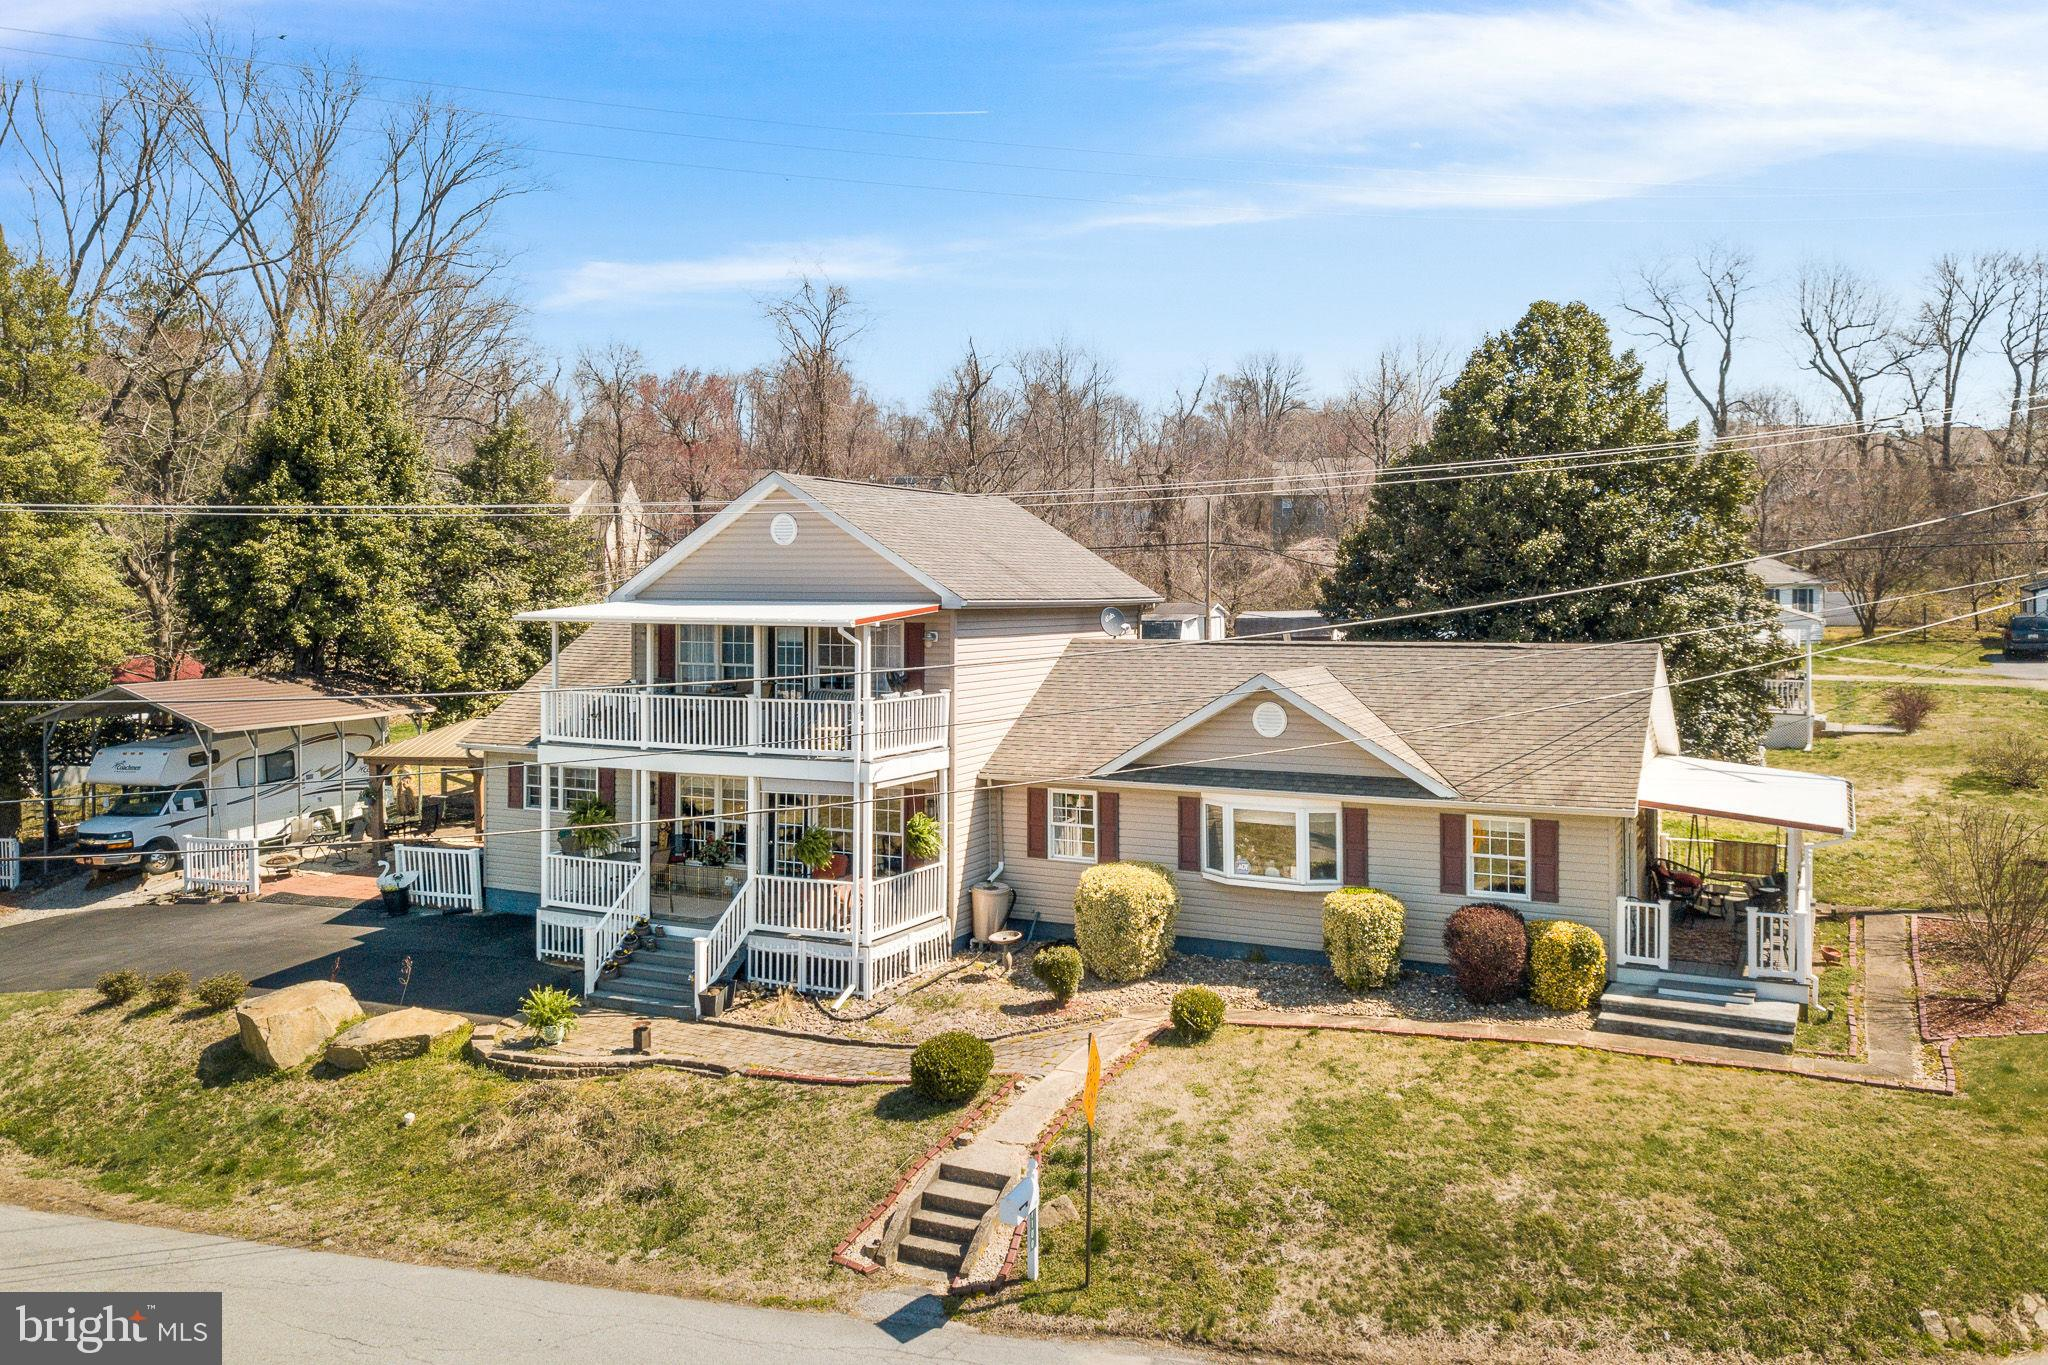 1100 FRENCHTOWN ROAD, PERRYVILLE, MD 21903